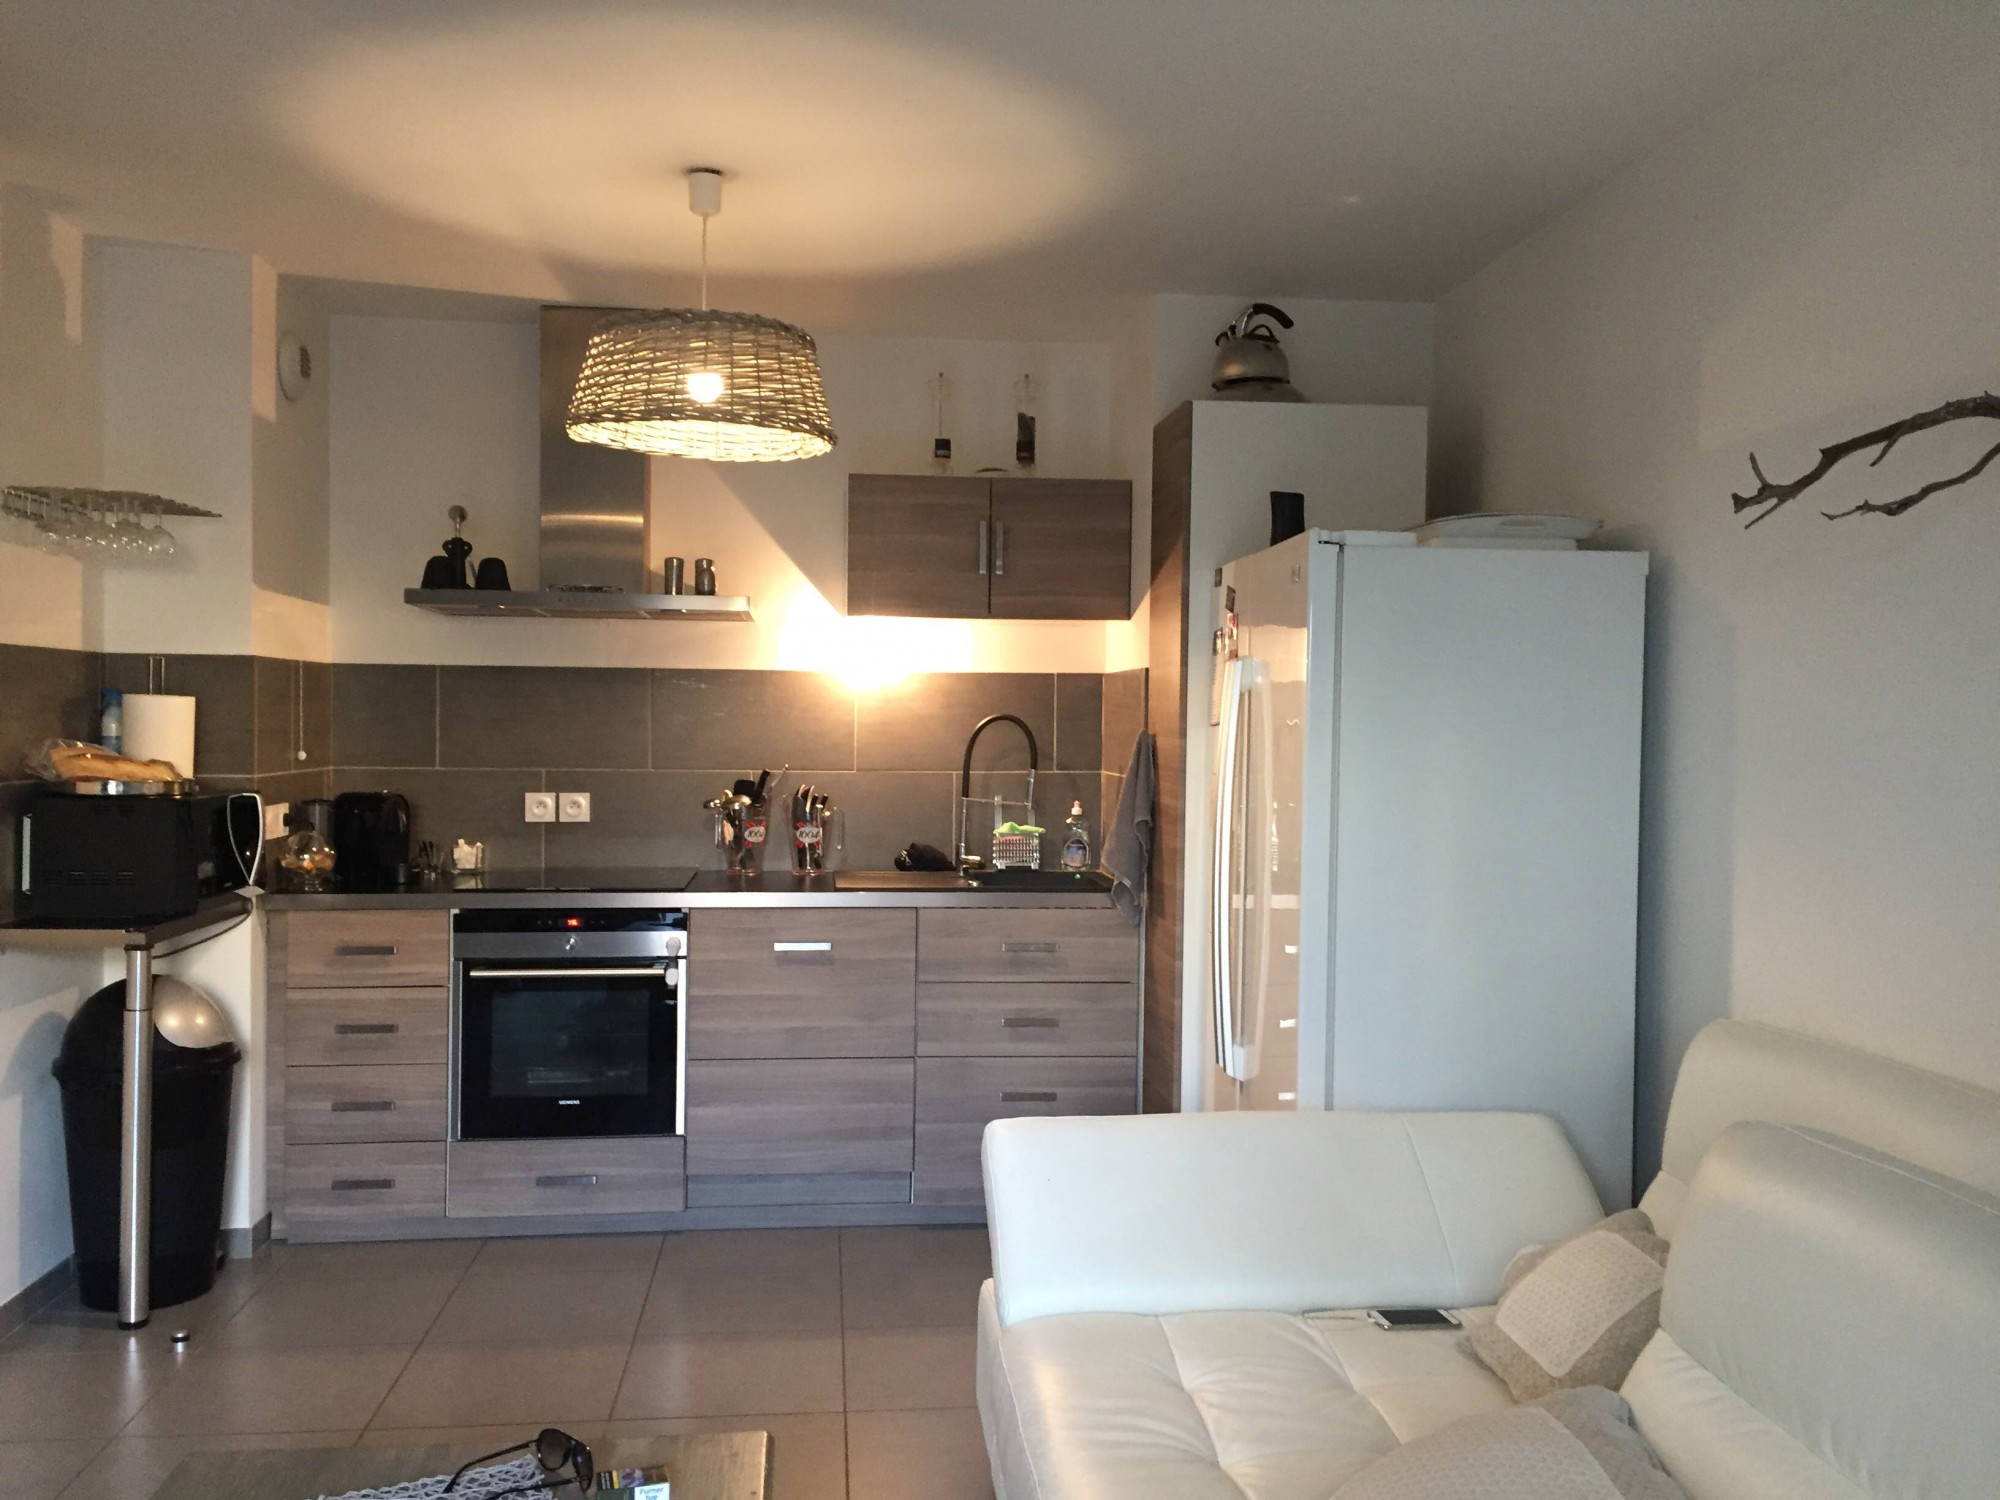 Vend appartement t2 norme bbc d 39 environ 40m avec grand for Appartement t2 bordeaux location